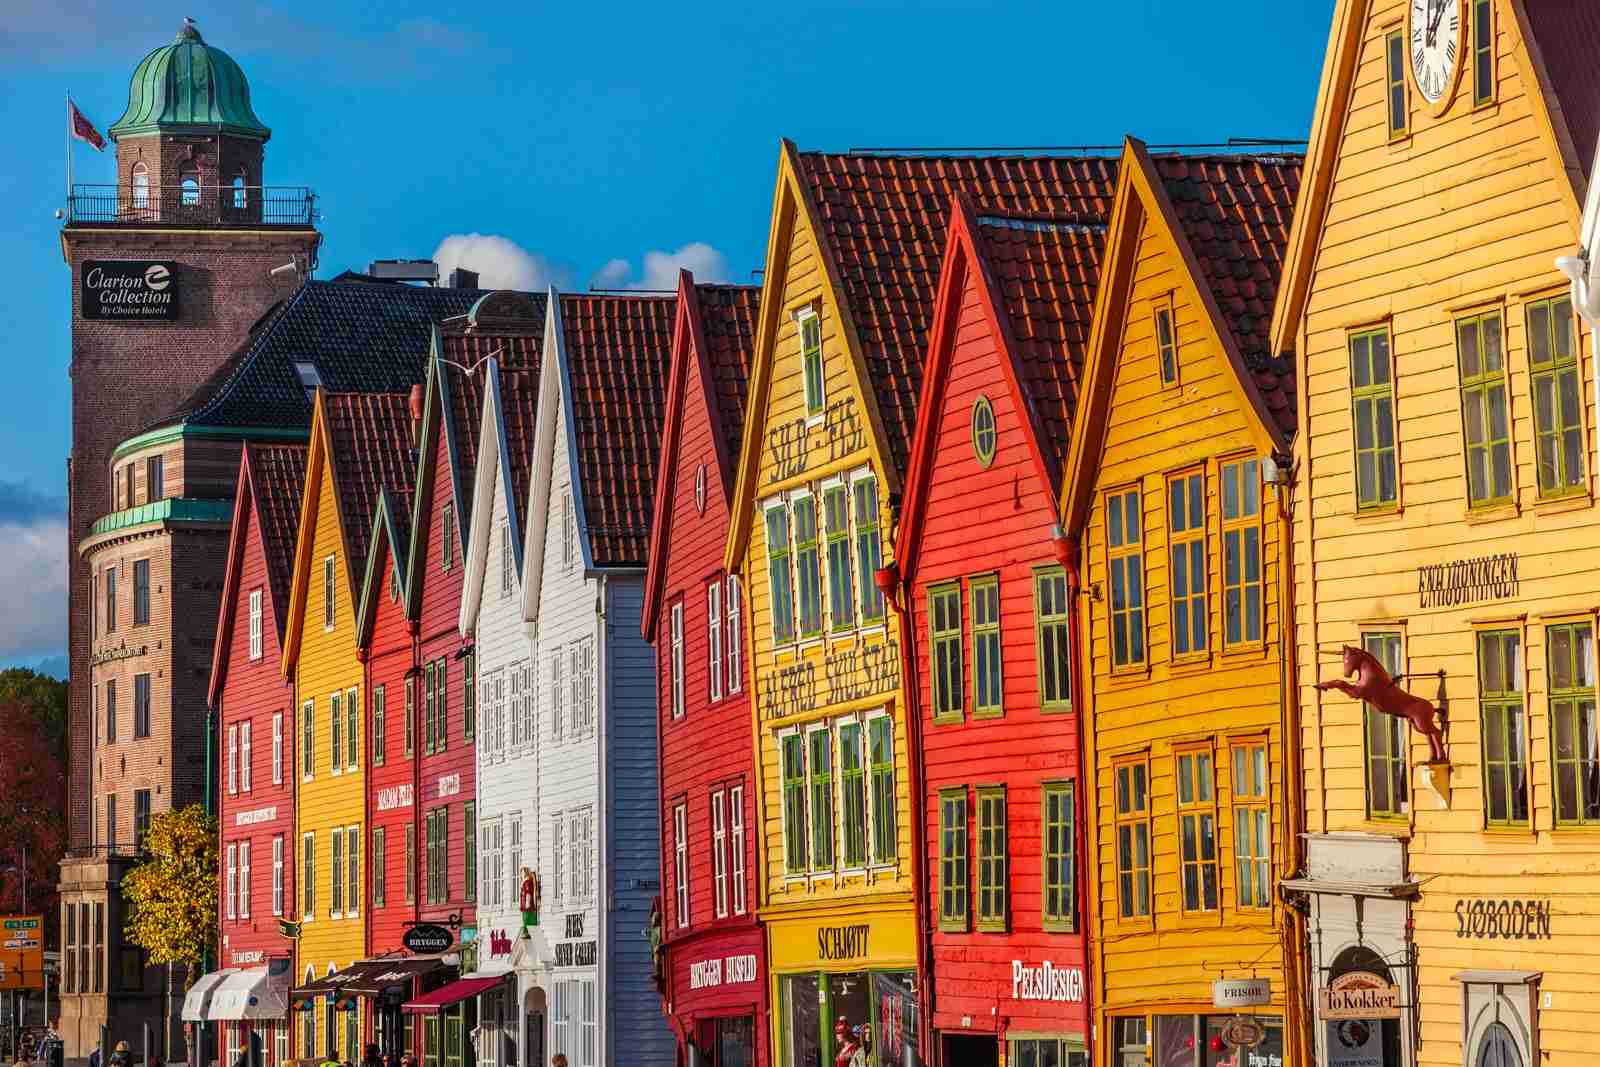 Houses in the old pier in Bryggen, Bergen. (Photo by Gonzalo Azumendi/Getty Images)